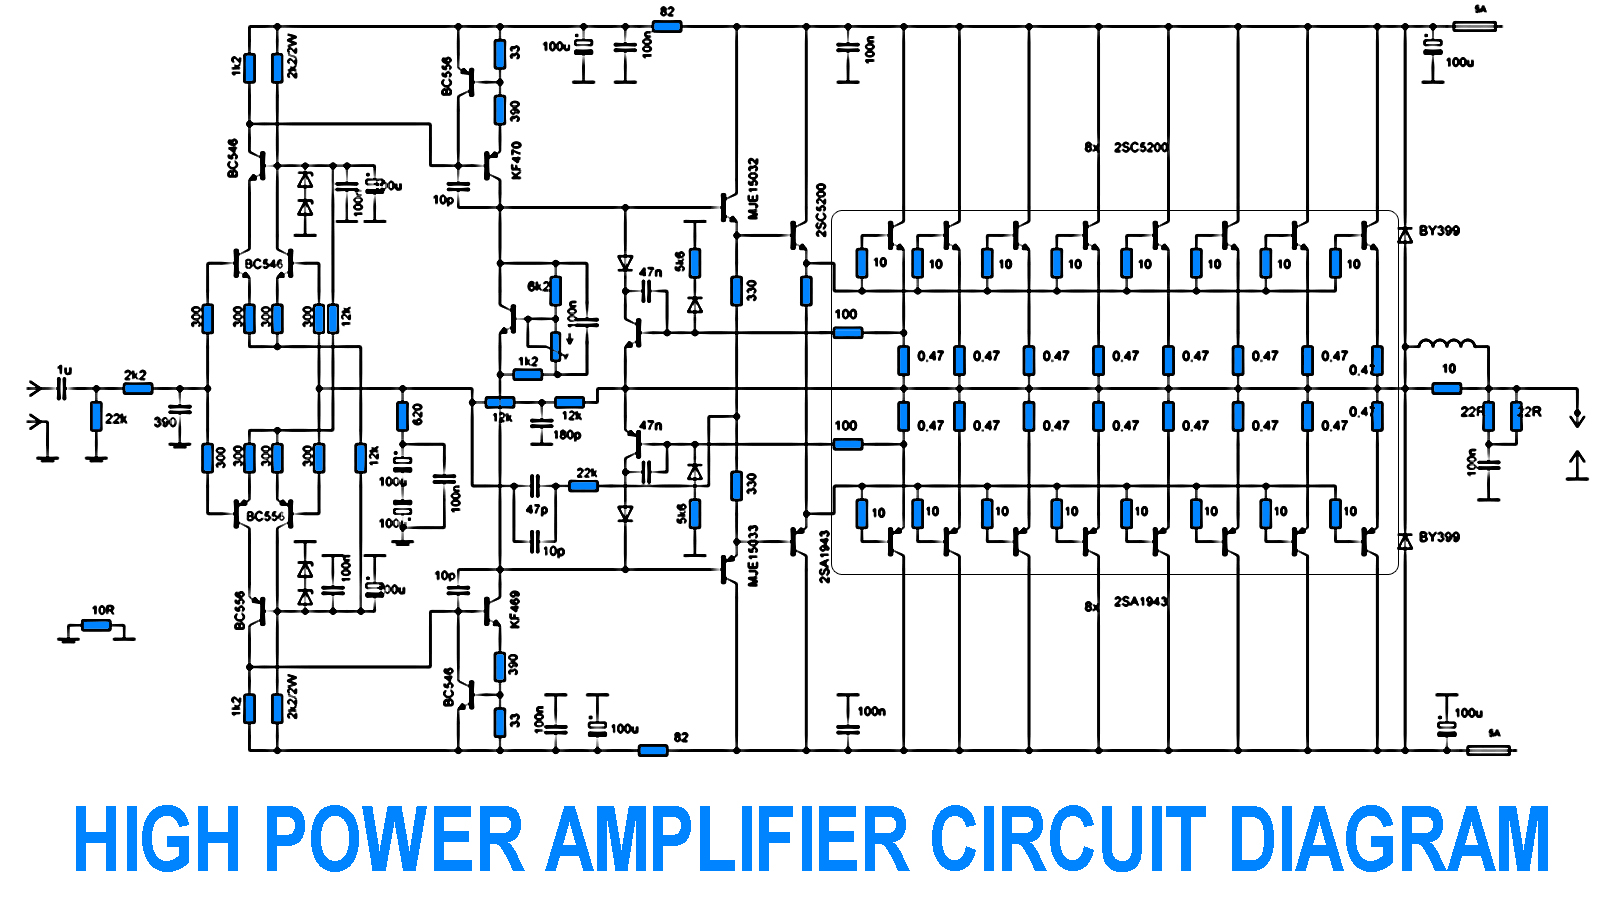 Grozzart 2sc5200 2sa1943 Amplifier Circuit Emitter Audio Preamp Schematic Using 1 Npn Transistor Drawing 700w Power With